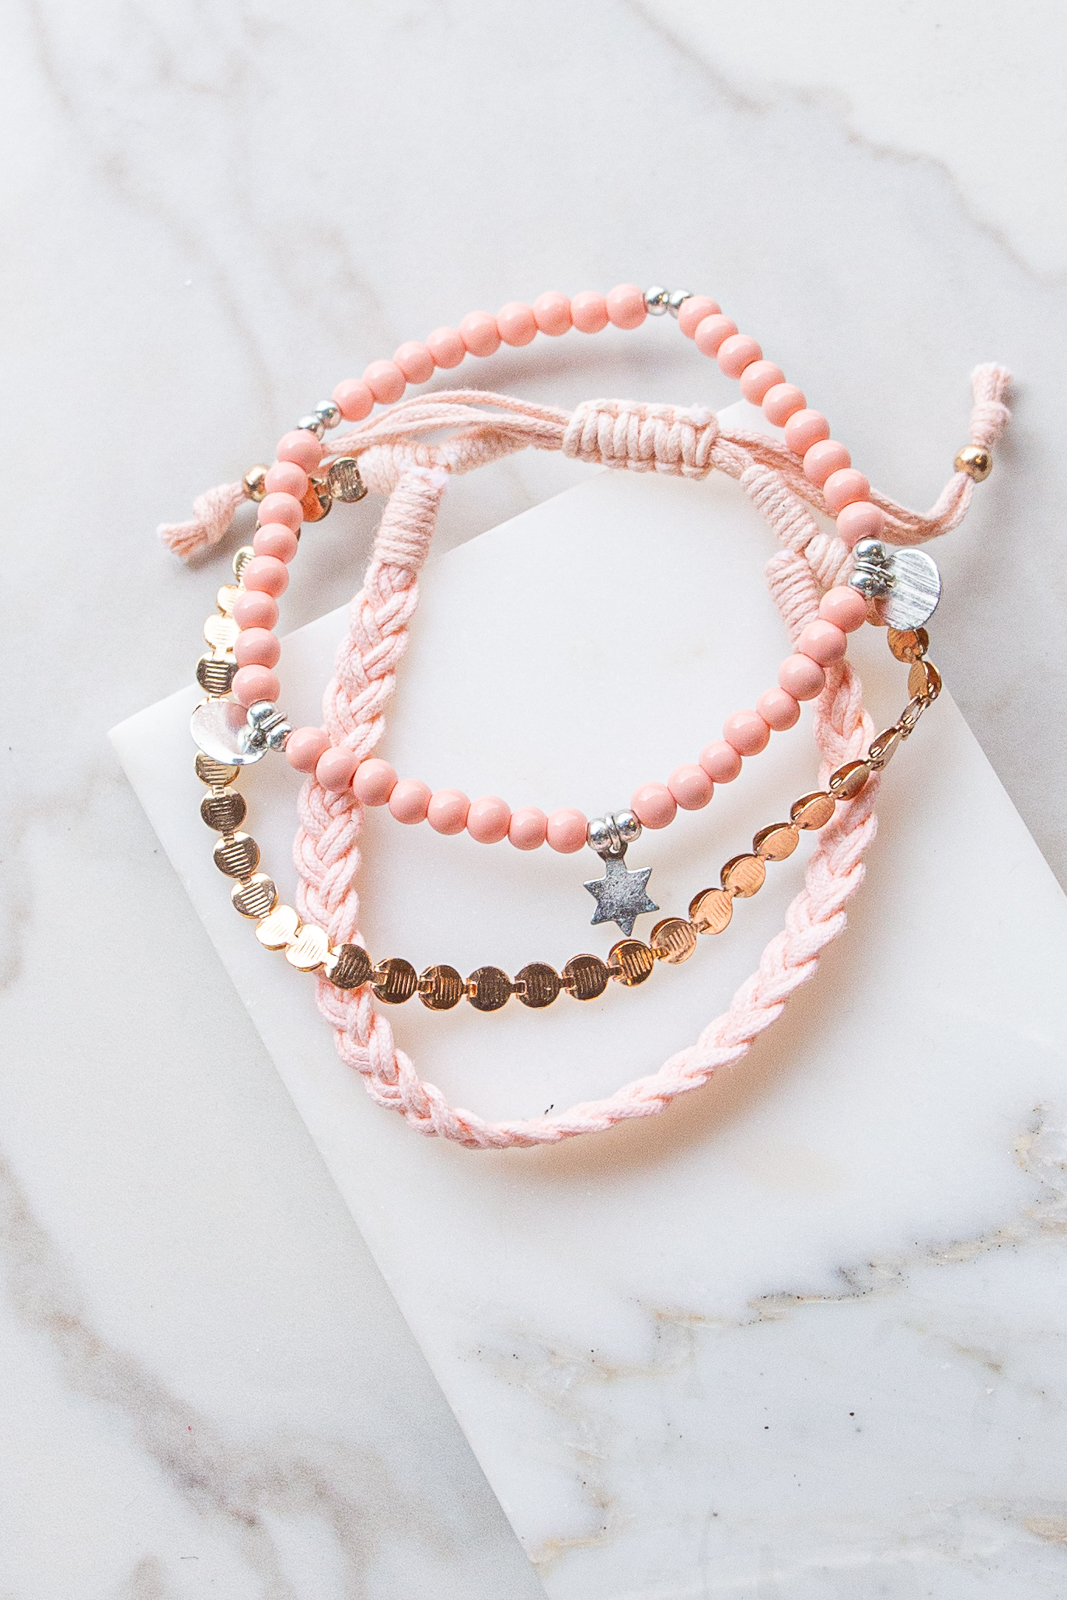 Dusty Blush and Peach Layered Braided Charm Bracelet